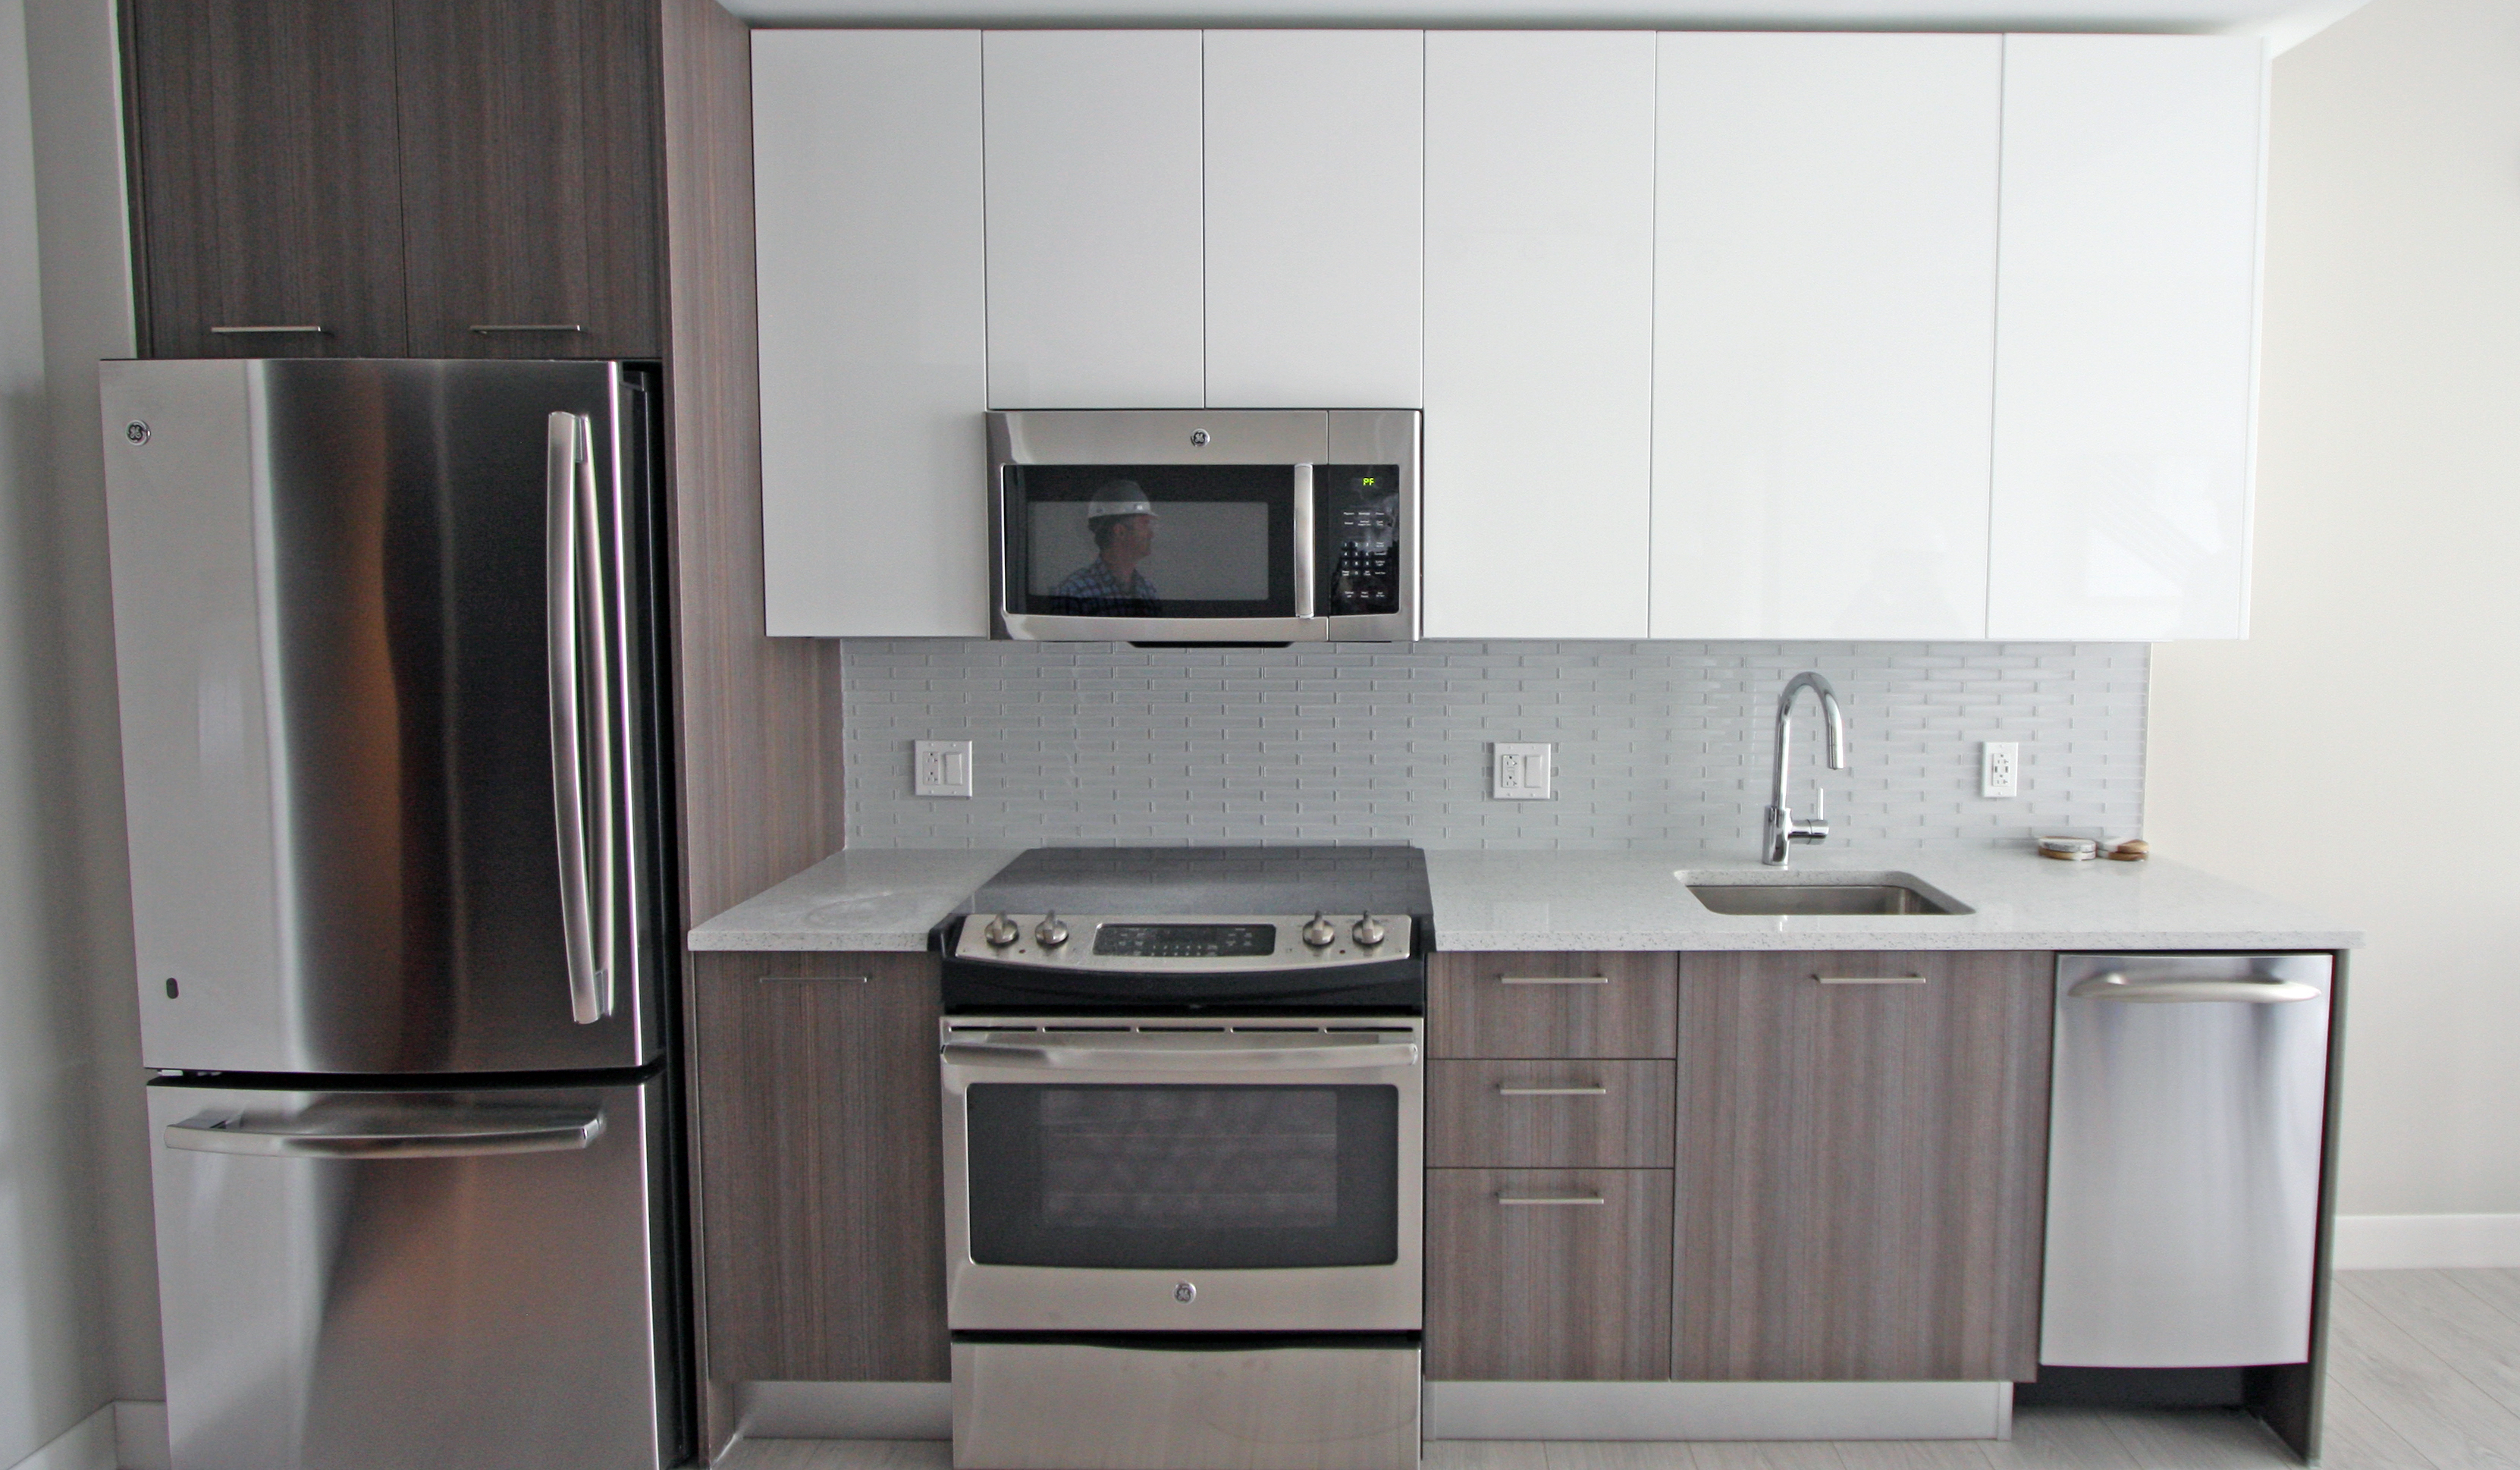 philly rent comparison 5 tiny studios for rent in new high rises